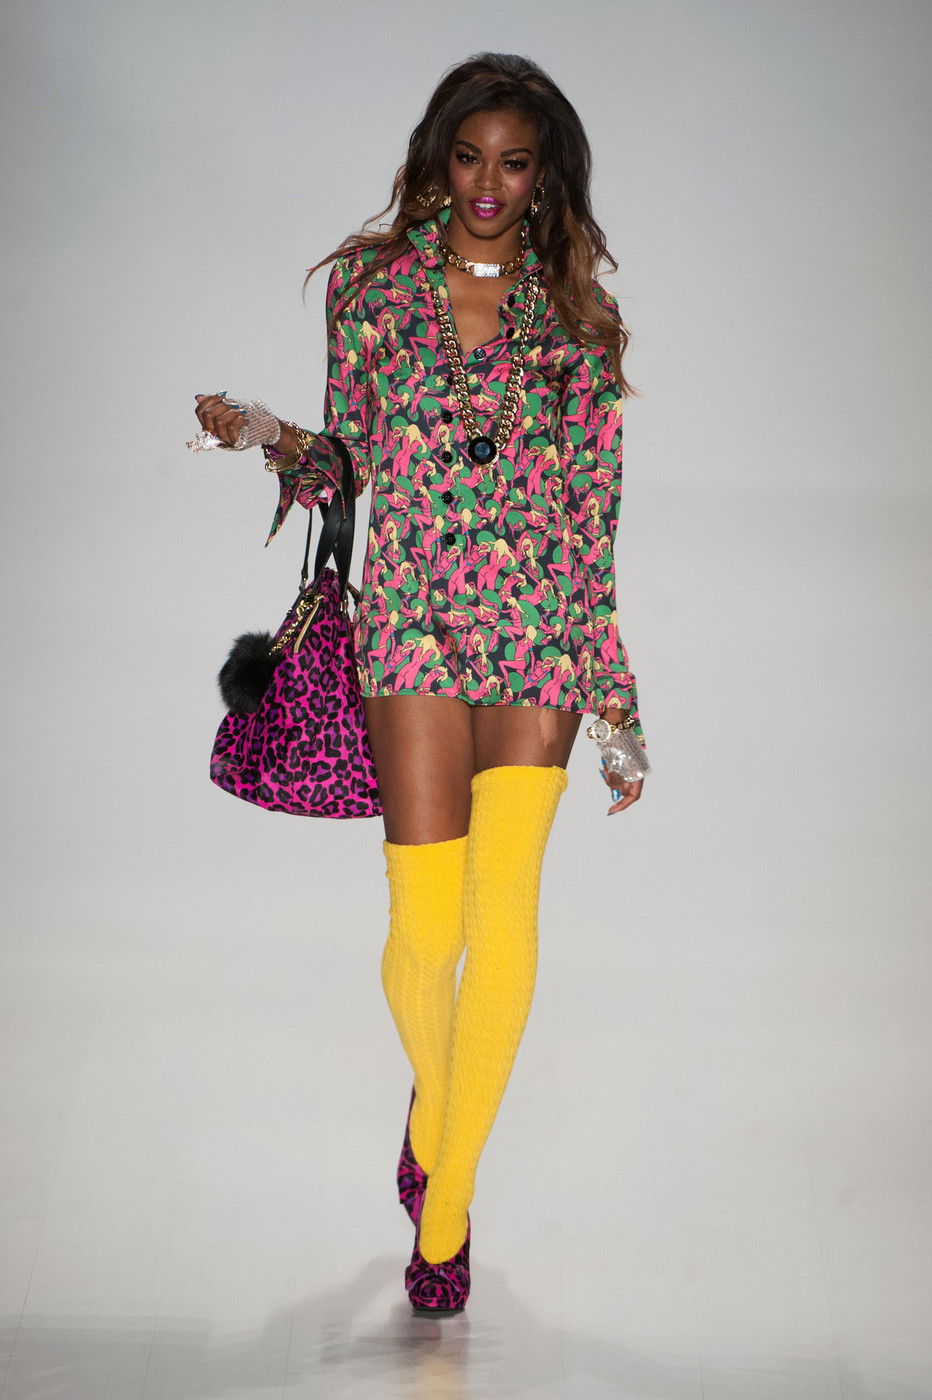 Betsey Johnson Fall 2014 Runway Pictures Livingly